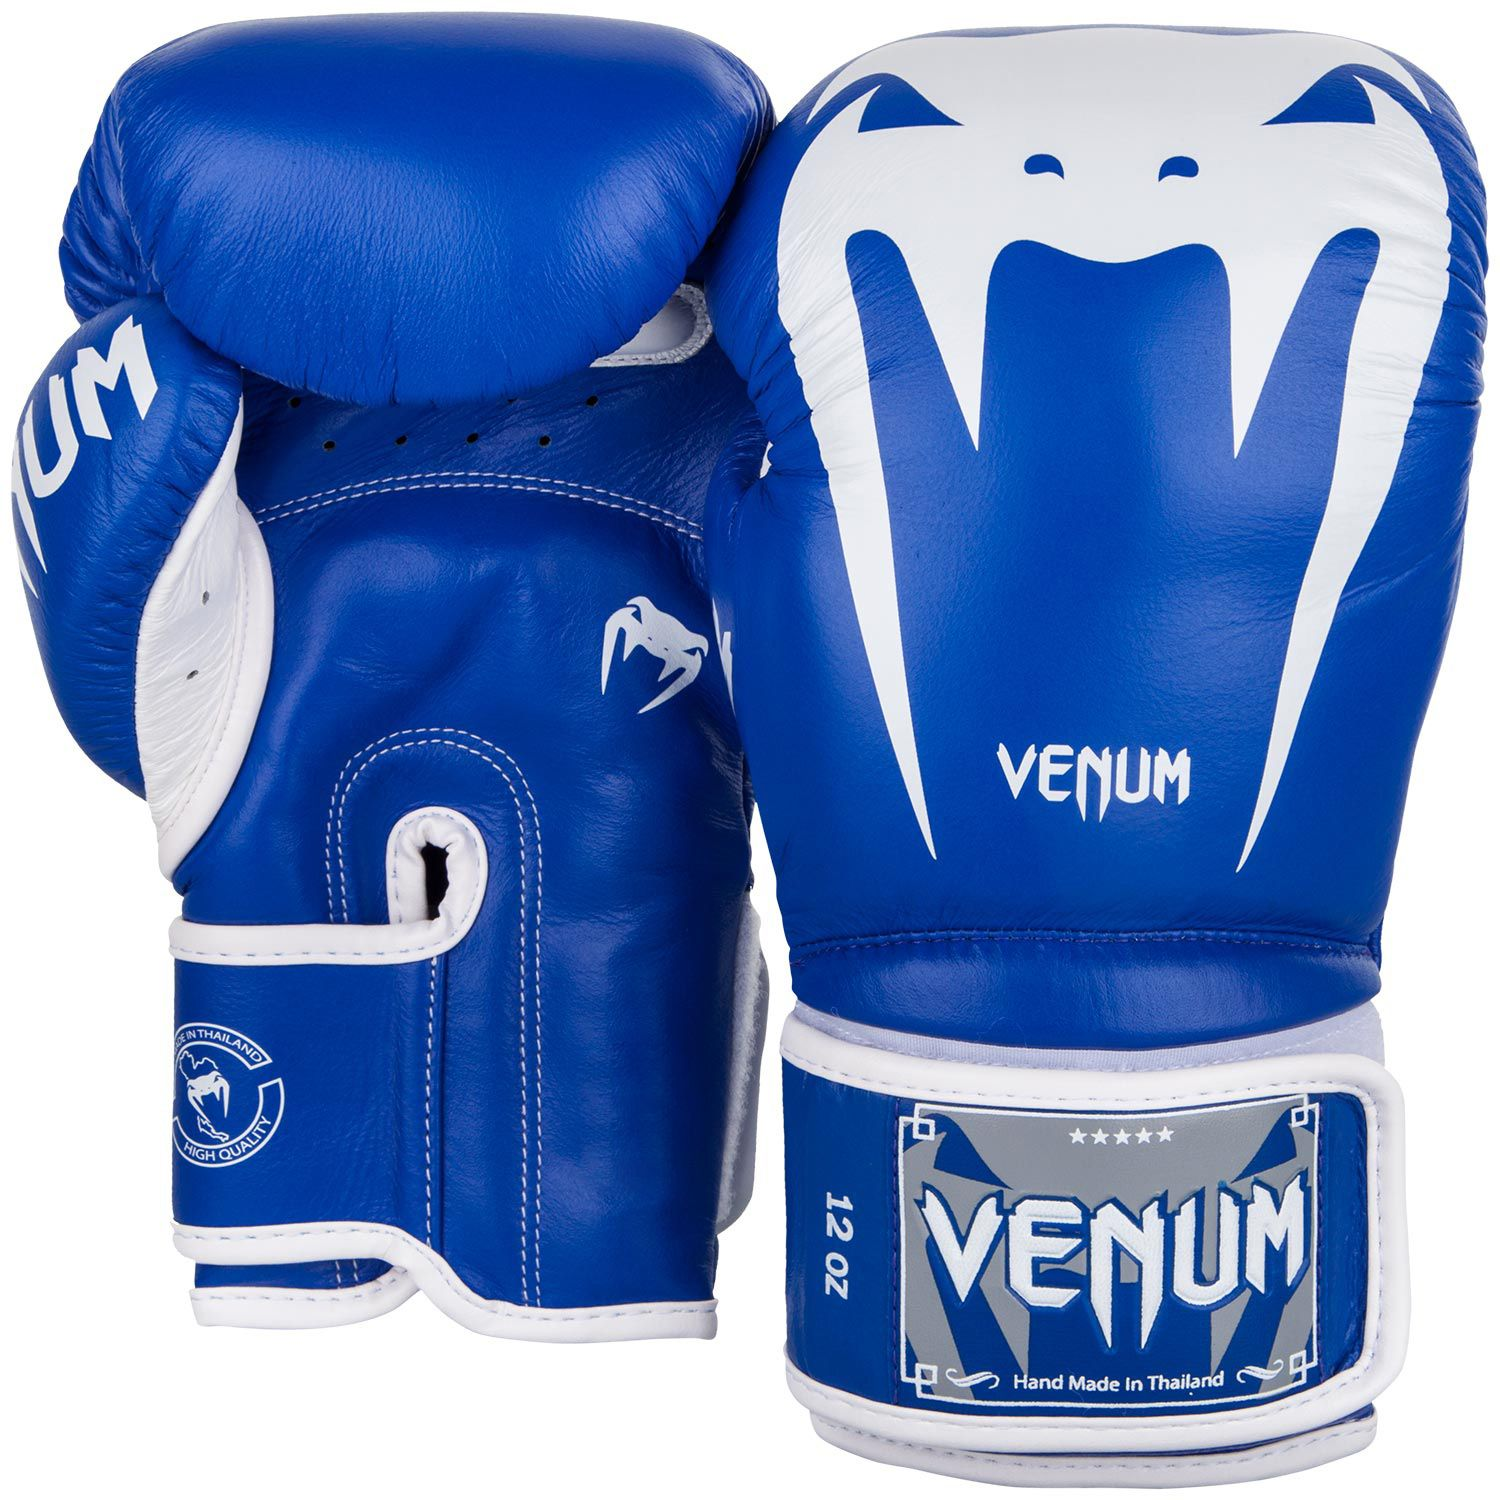 Venum Giant 3.0 Boxing Gloves - Nappa Leather - Blue